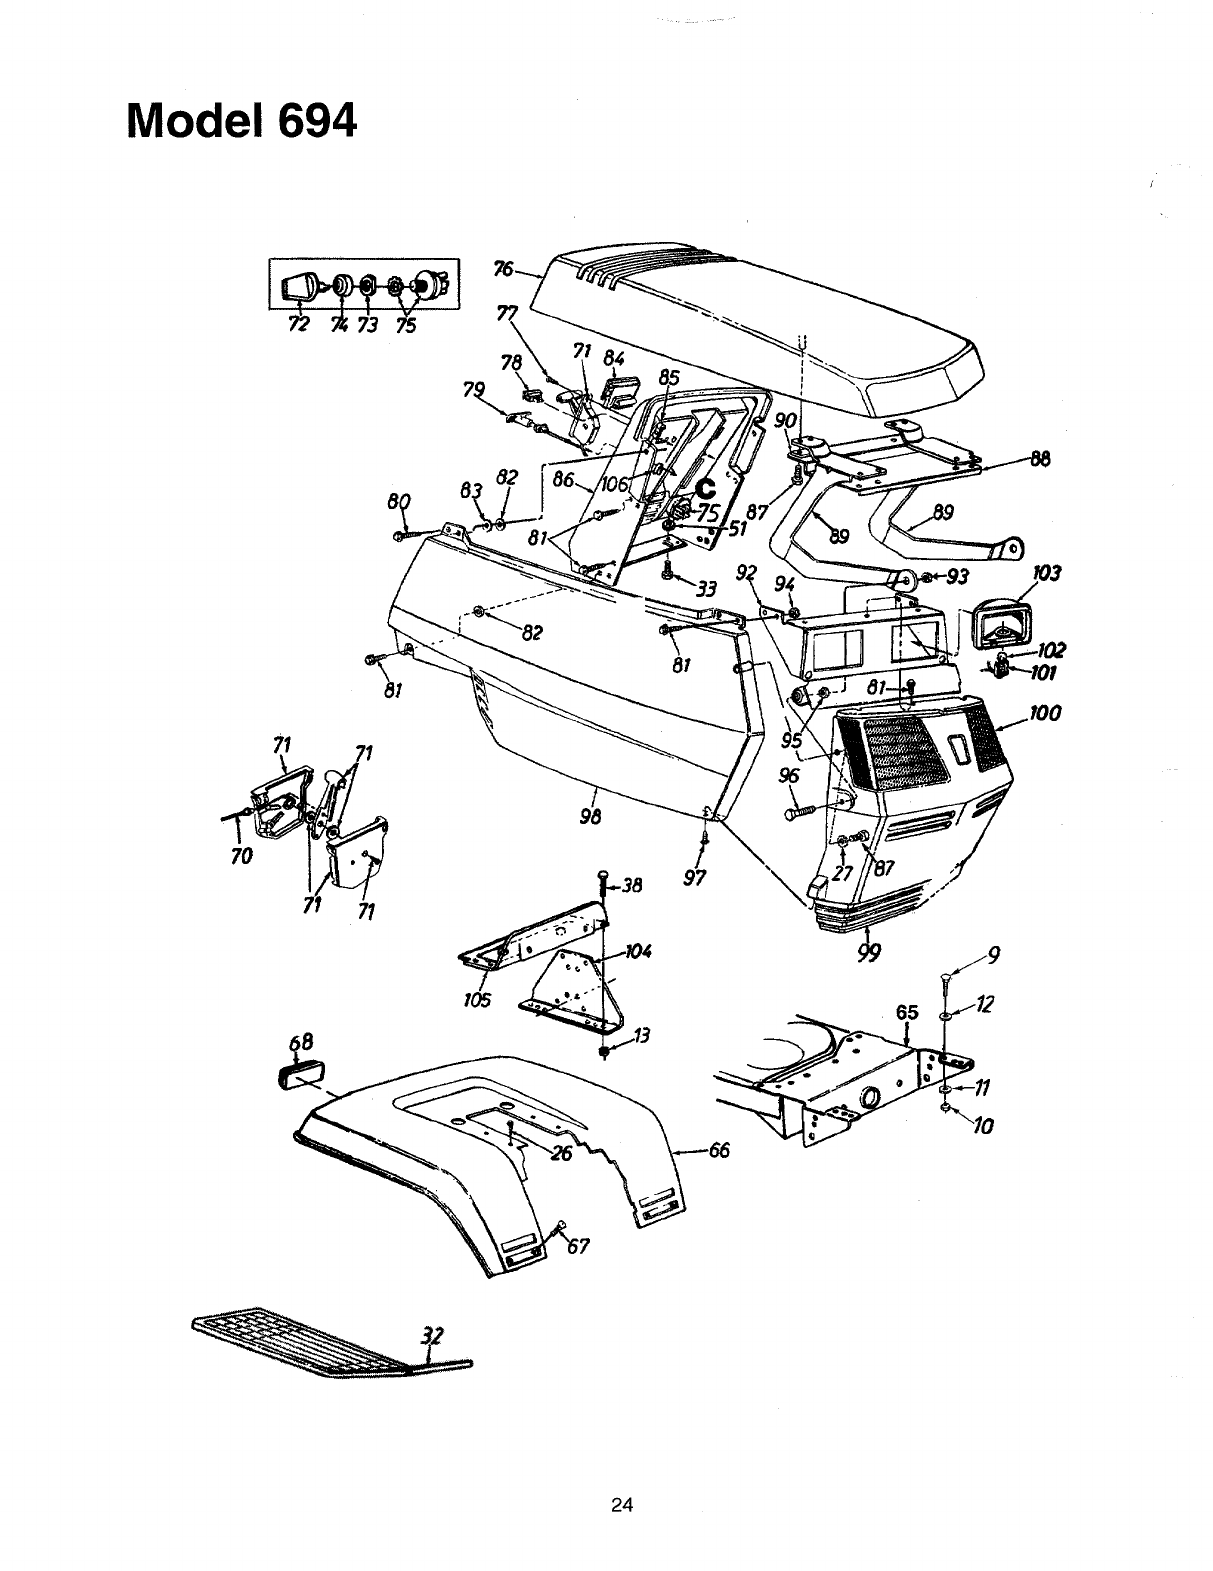 Page 24 of Yard-Man Lawn Mower 694 User Guide